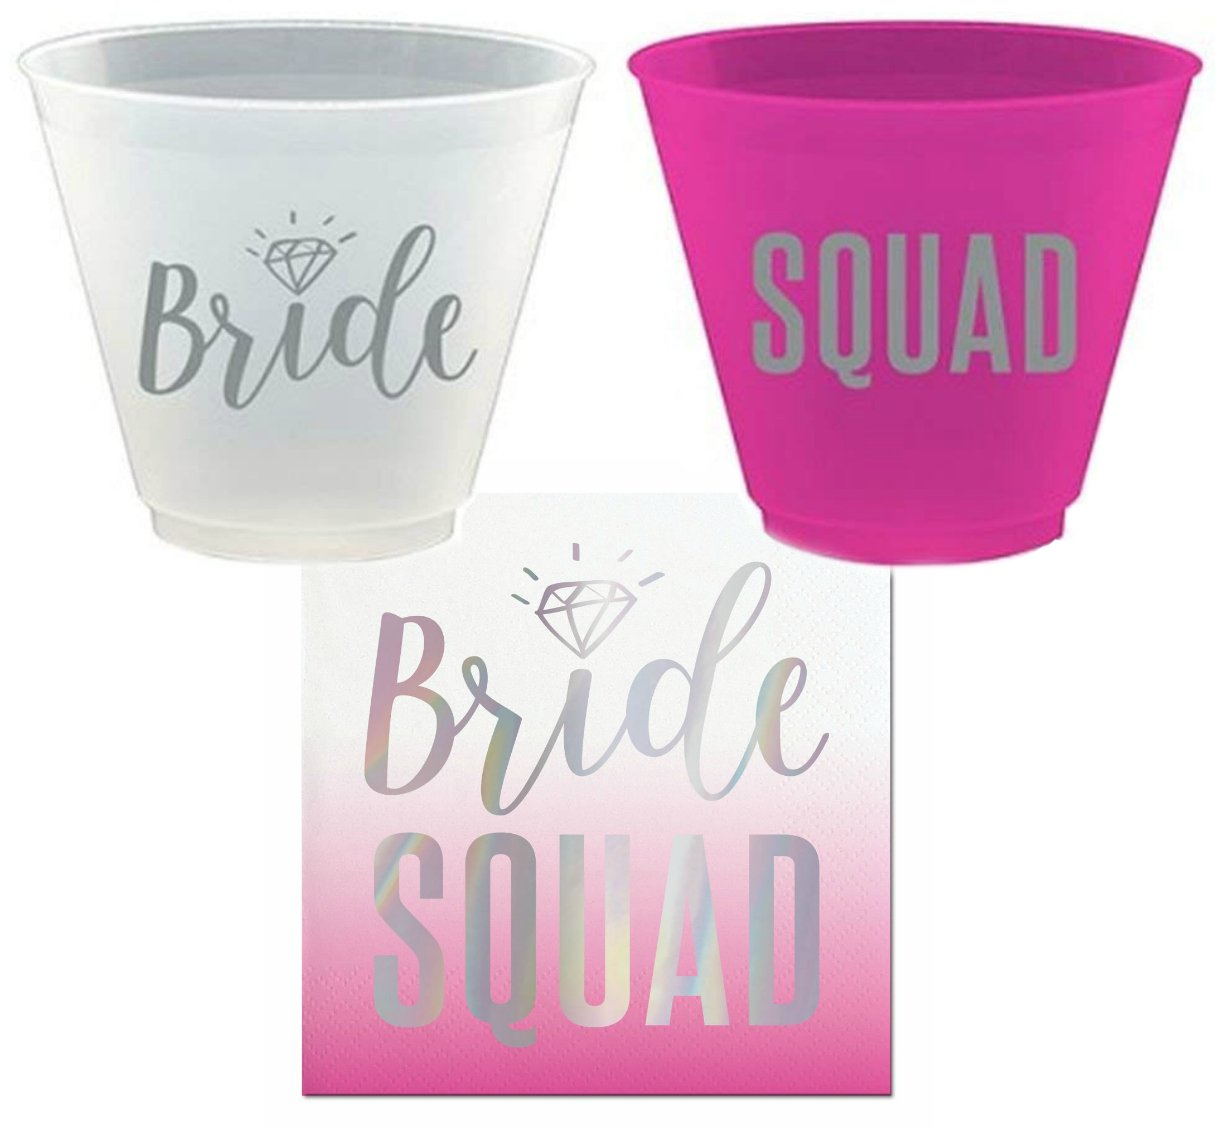 Bride Squad Bachelorette Party Cups and Napkins Set, Bachelorette Party Supplies for 8 by Joyous Occasions Collection